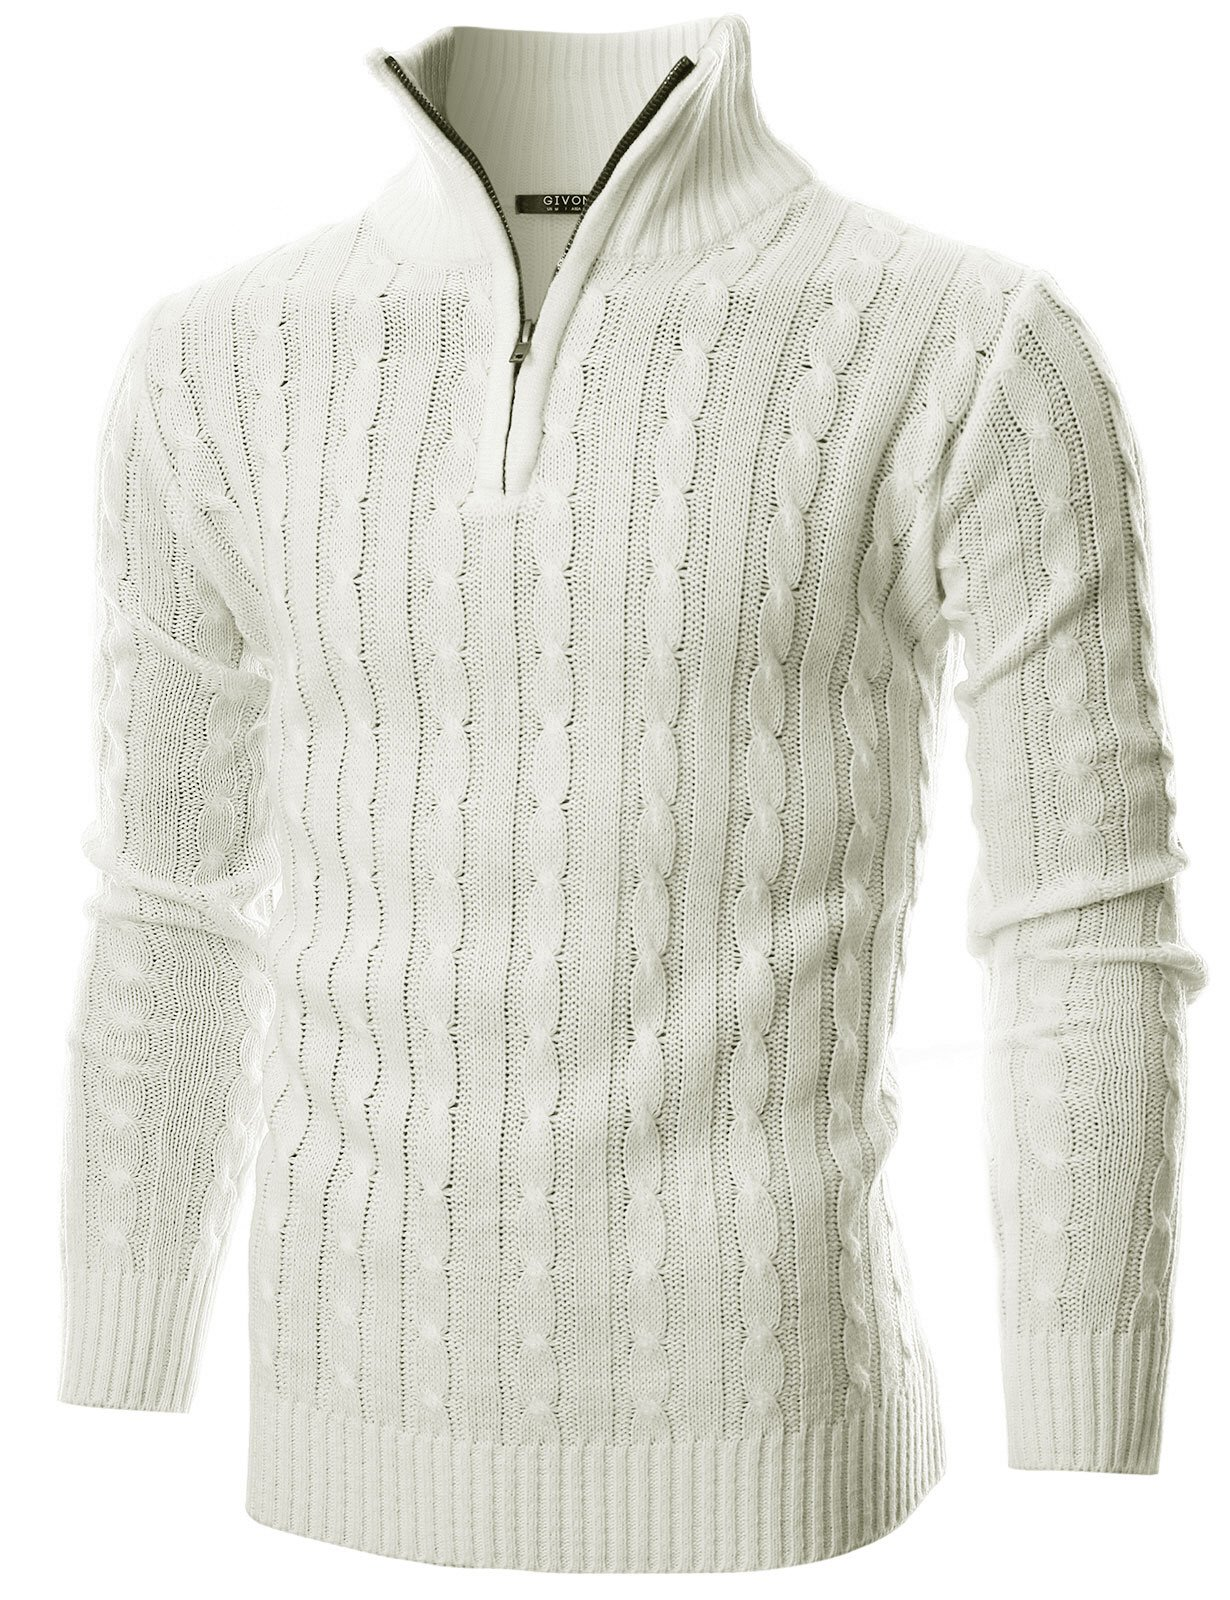 GIVON Mens Slim Fit Cable Knit Quarter Zip Long Sleeve Turtle Neck Pullover Sweater/DCP044-IVORY-S